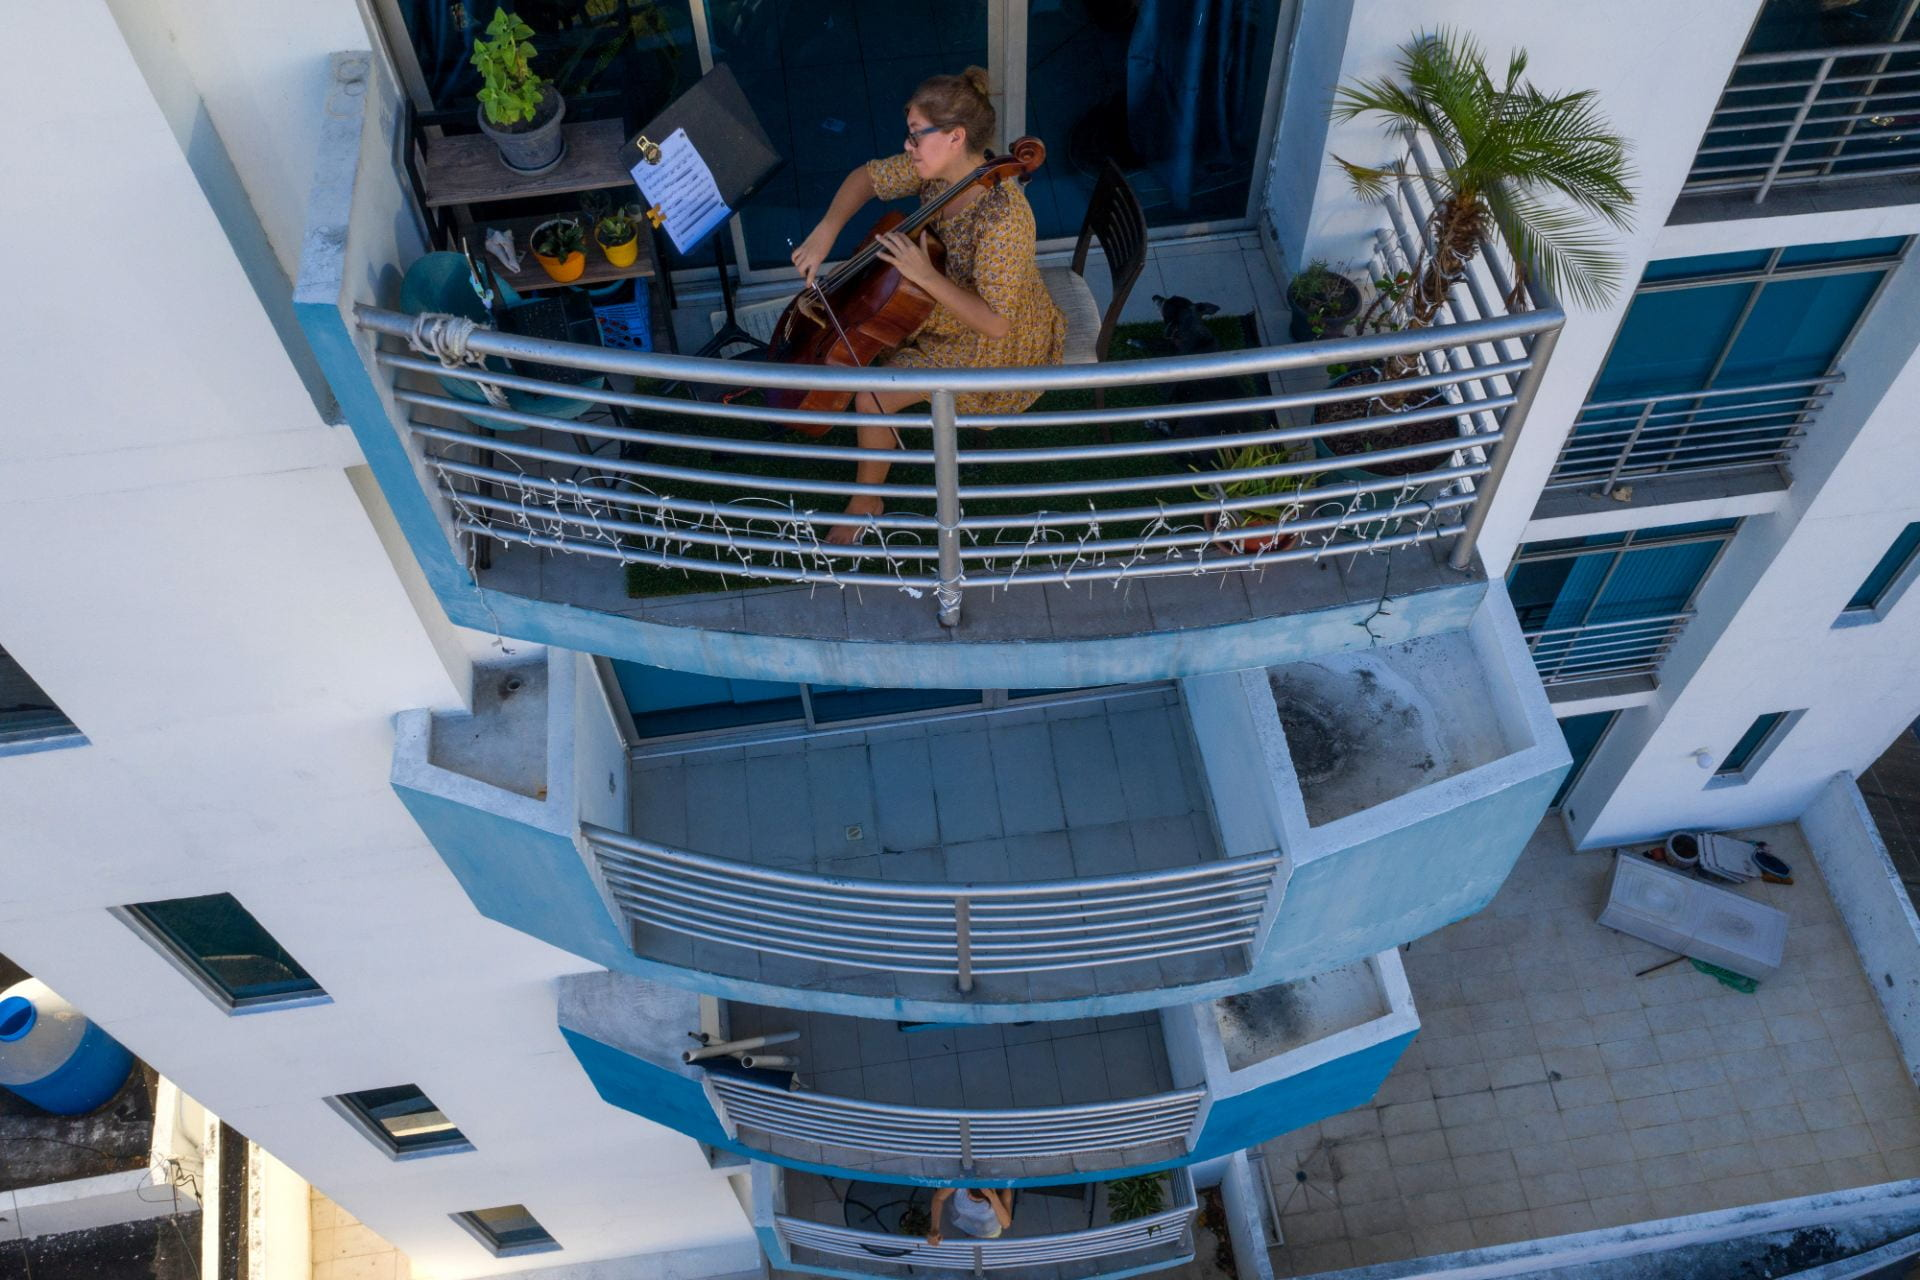 cellist Karina Nunez playing on the balcony of her apartment in Panama City